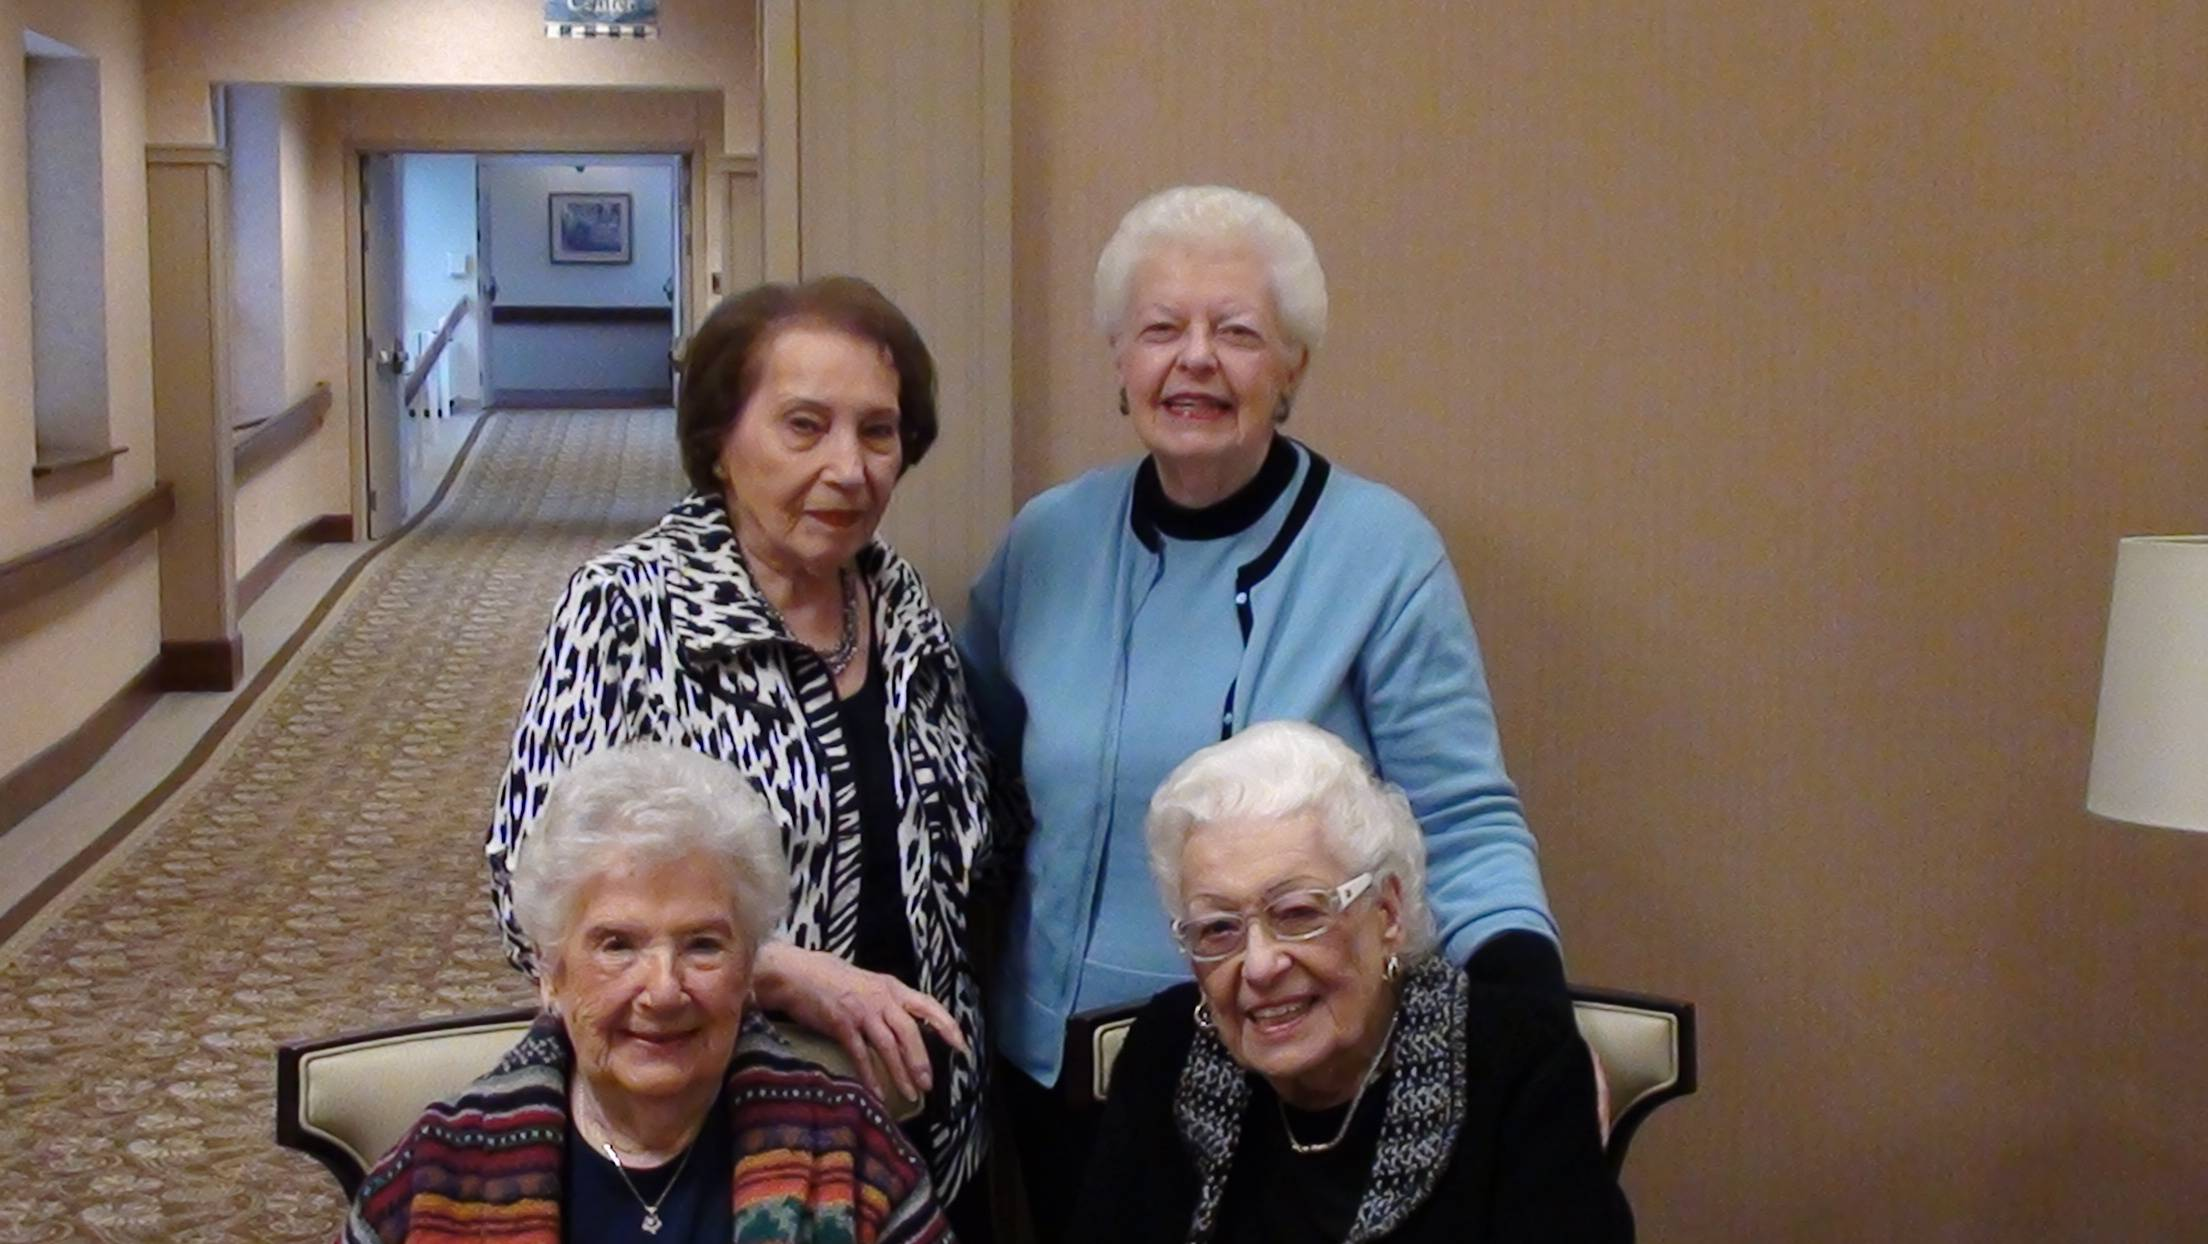 Back row: Vera Cohen (left), Nora O'Malley (right) Front row: Ruth Saffro (left), June Lauter (right)